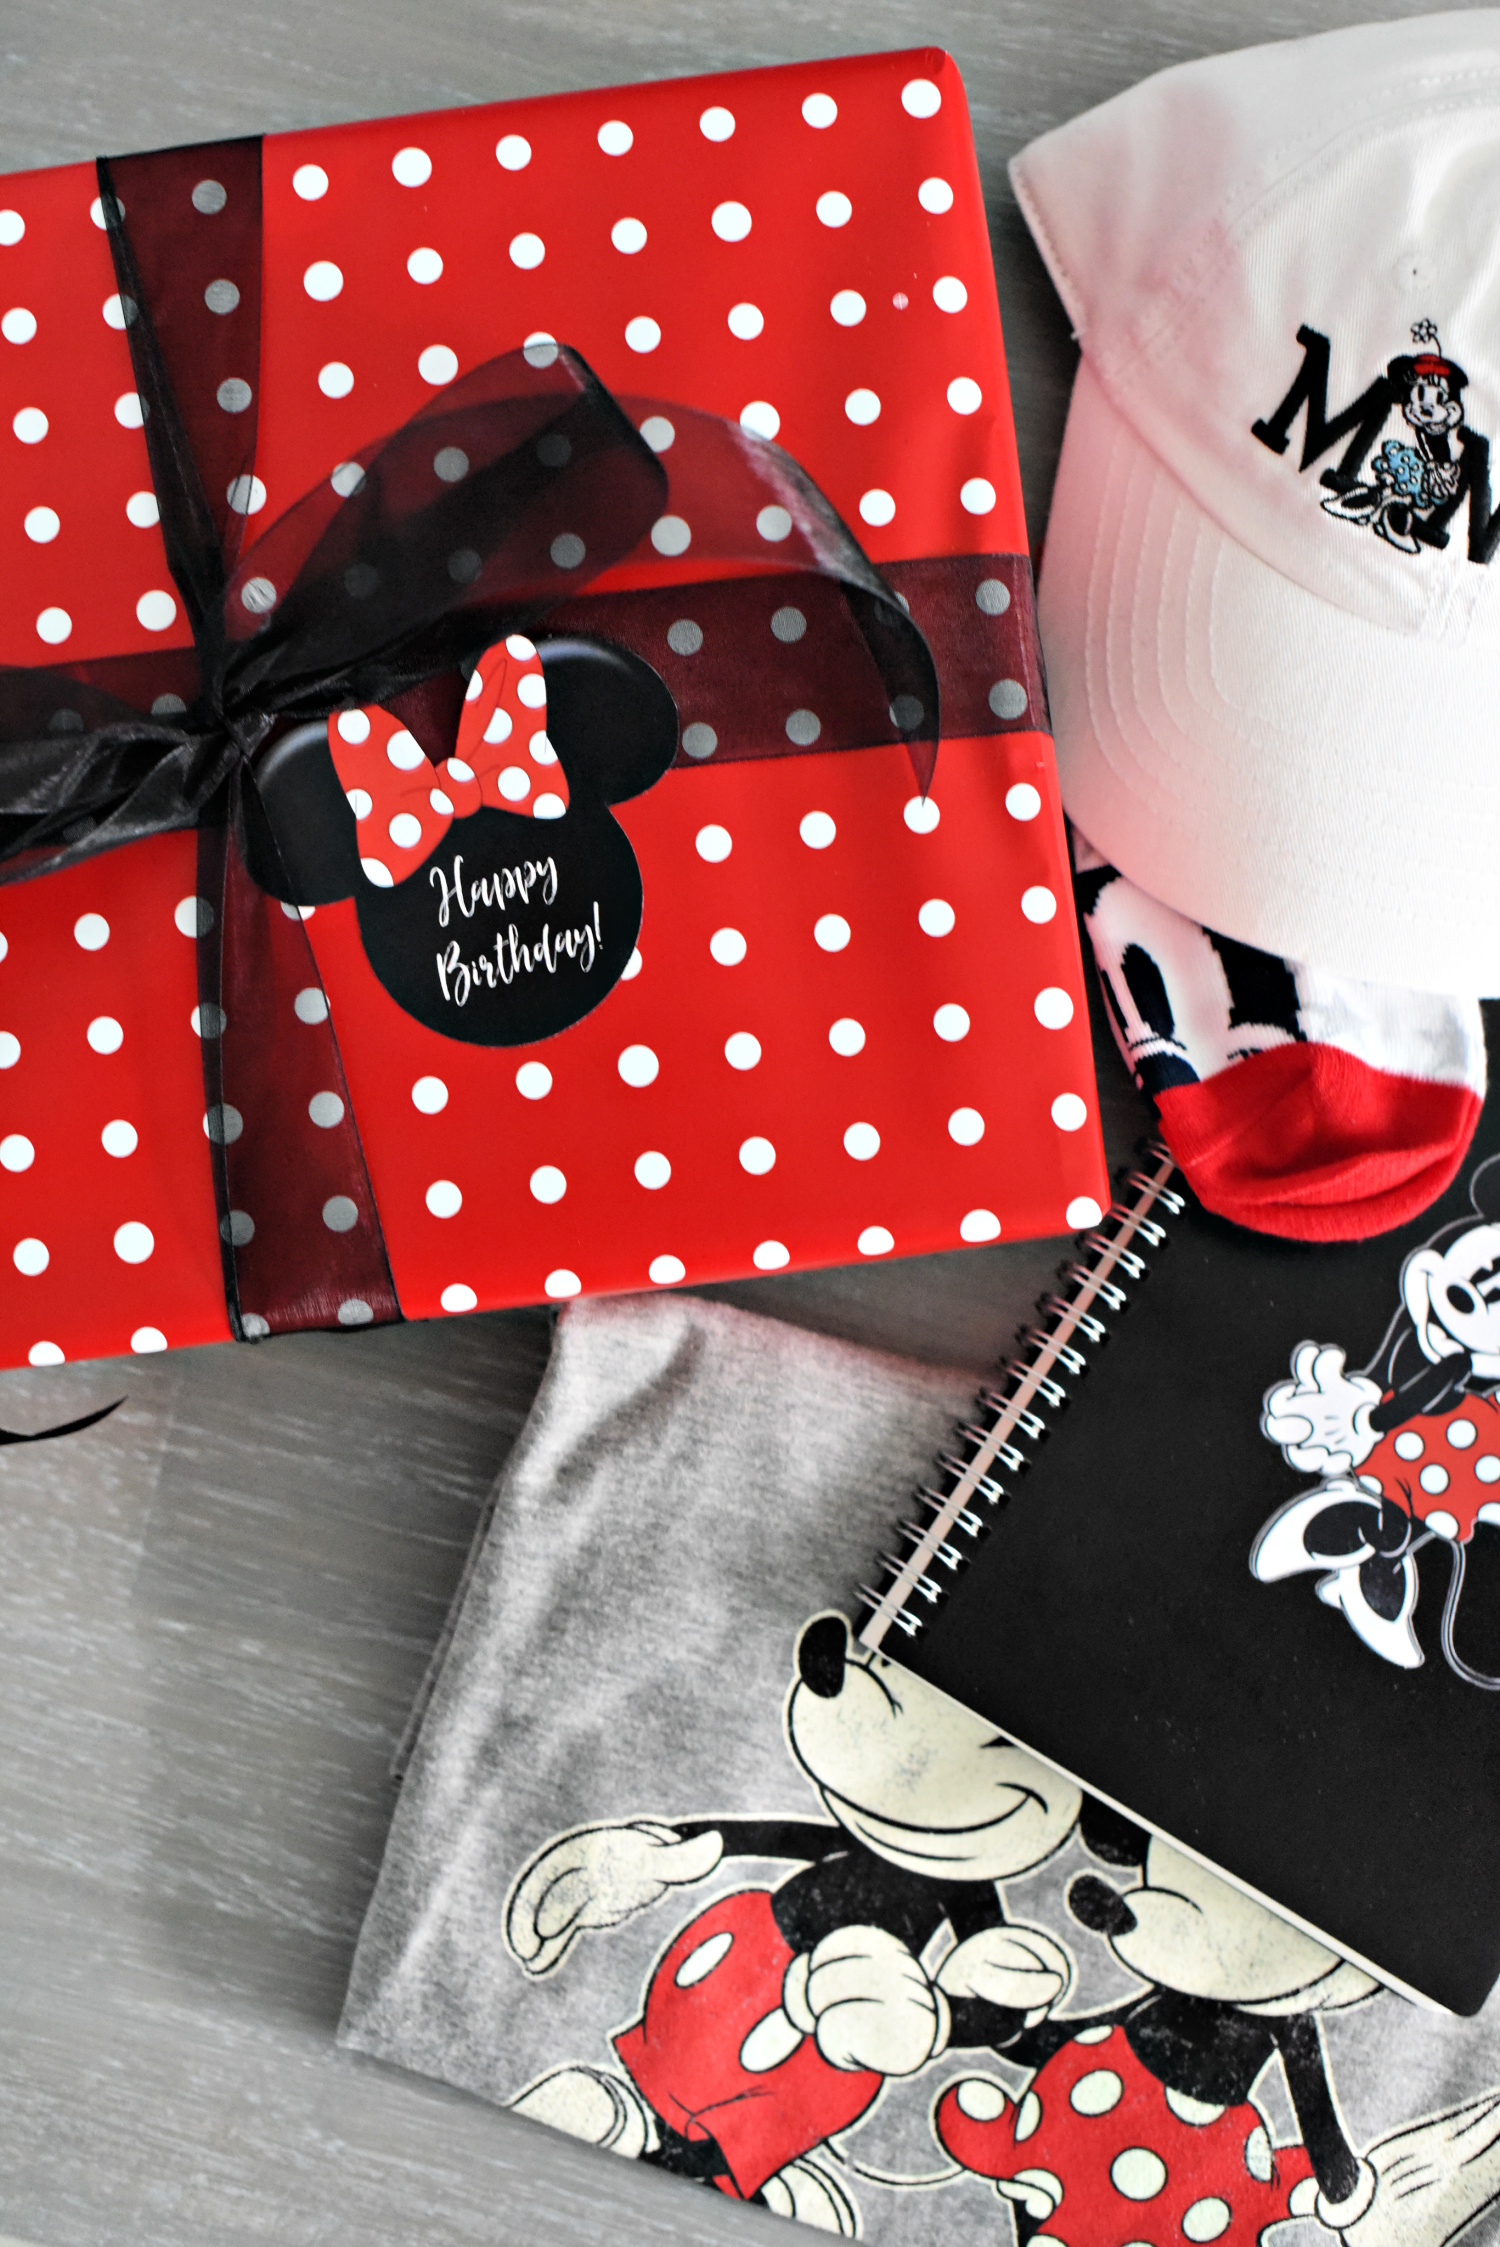 Cute Minnie Mouse Gift for Friends! Got a friend who loves Disney? She will love this Minnie Mouse birthday gift! #minniemouse #birthdaygifts #giftsforfriends #giftideas #disney